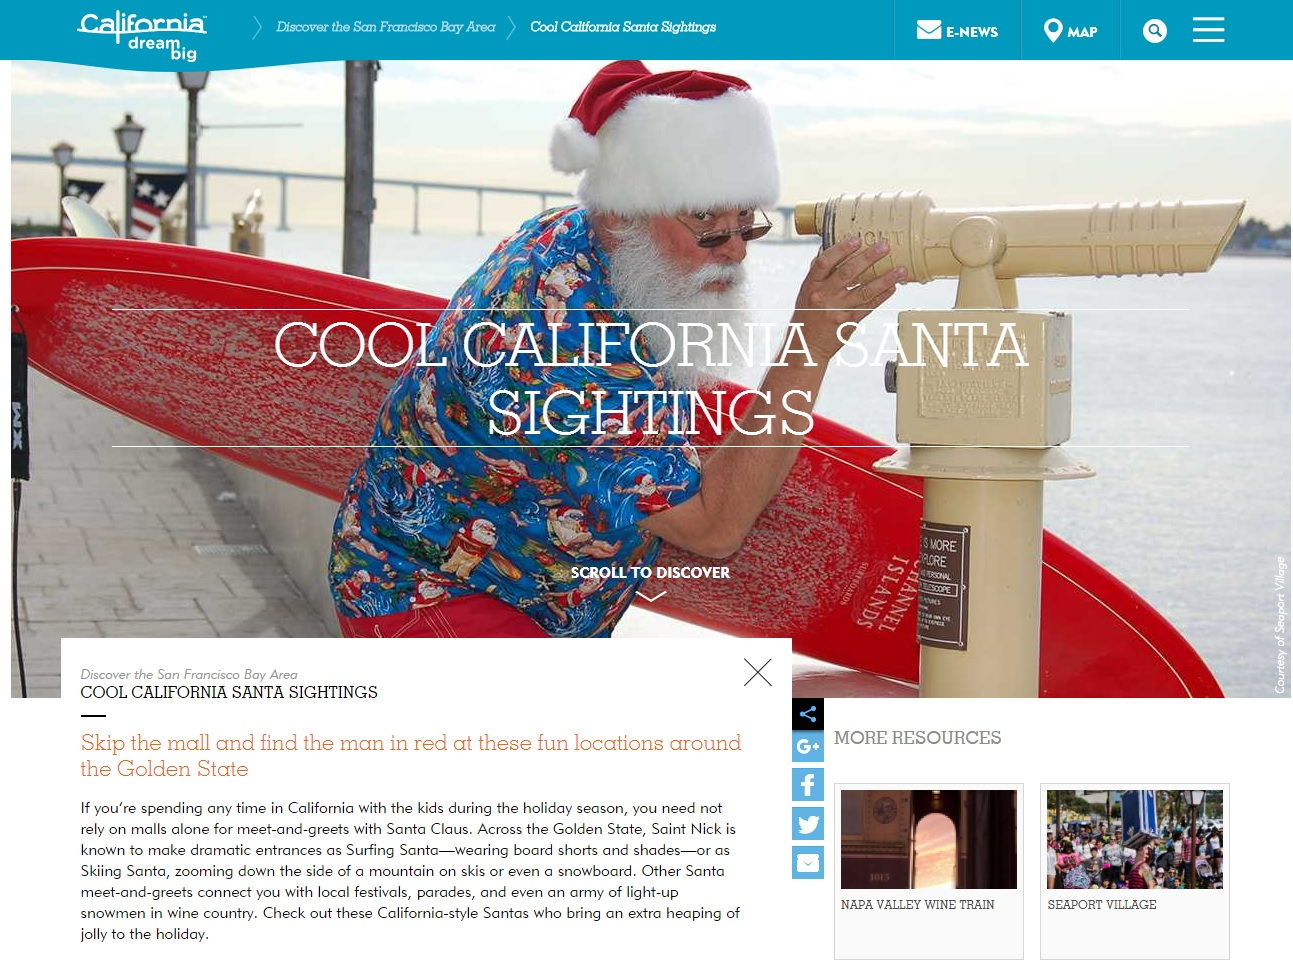 VisitCA_SantaSightings_Nov2016.jpg